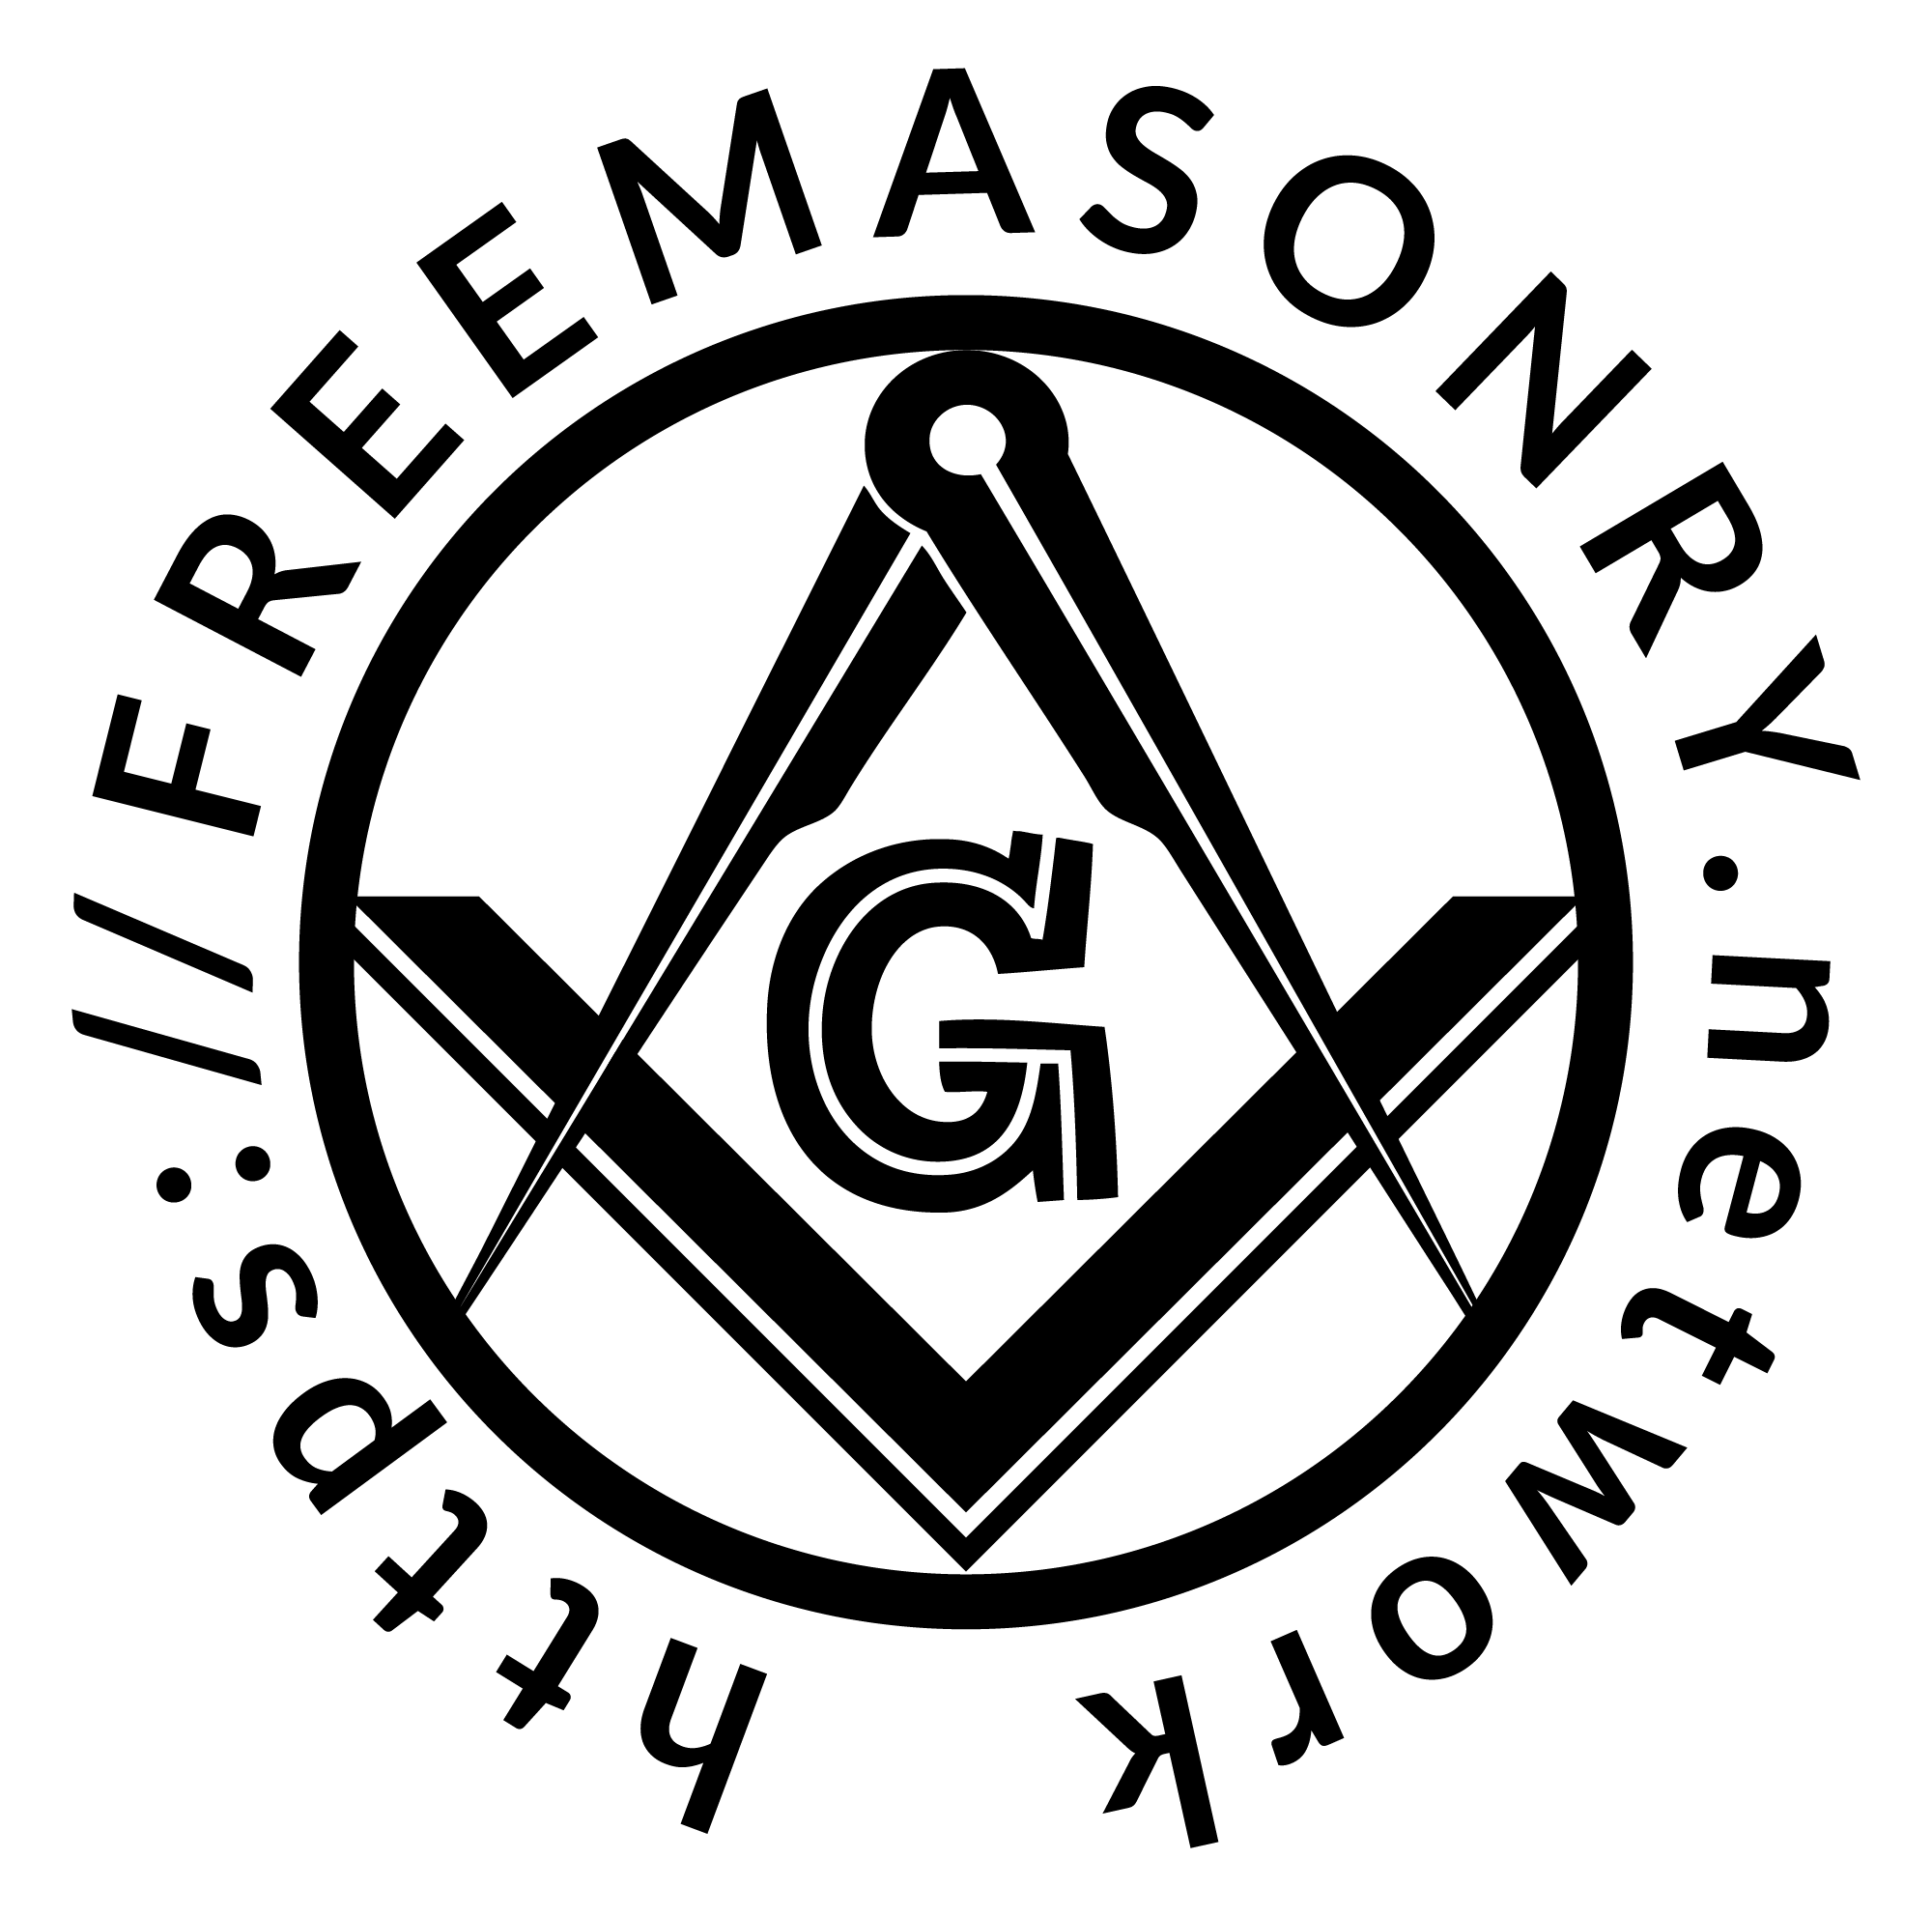 LOST WORD IN FREEMASONRY